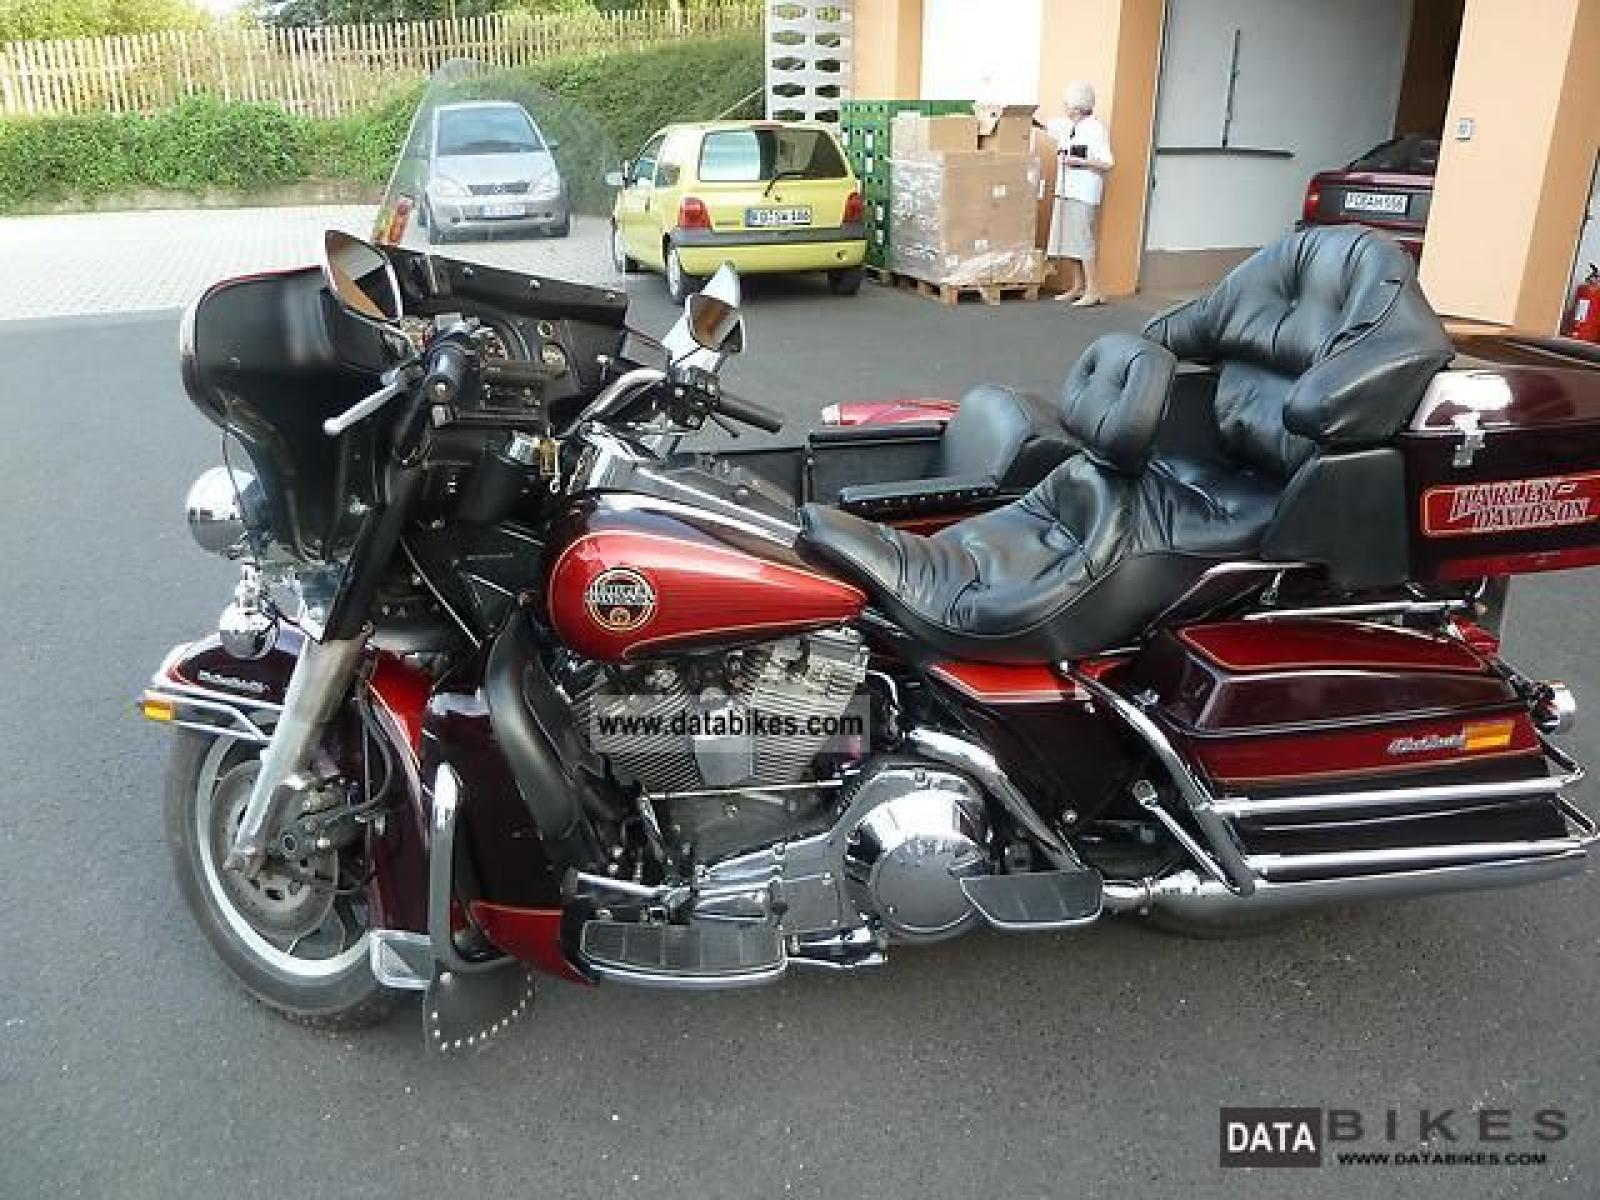 1990 Harley-Davidson FLHTC 1340 Electra Glide Classic pic 17